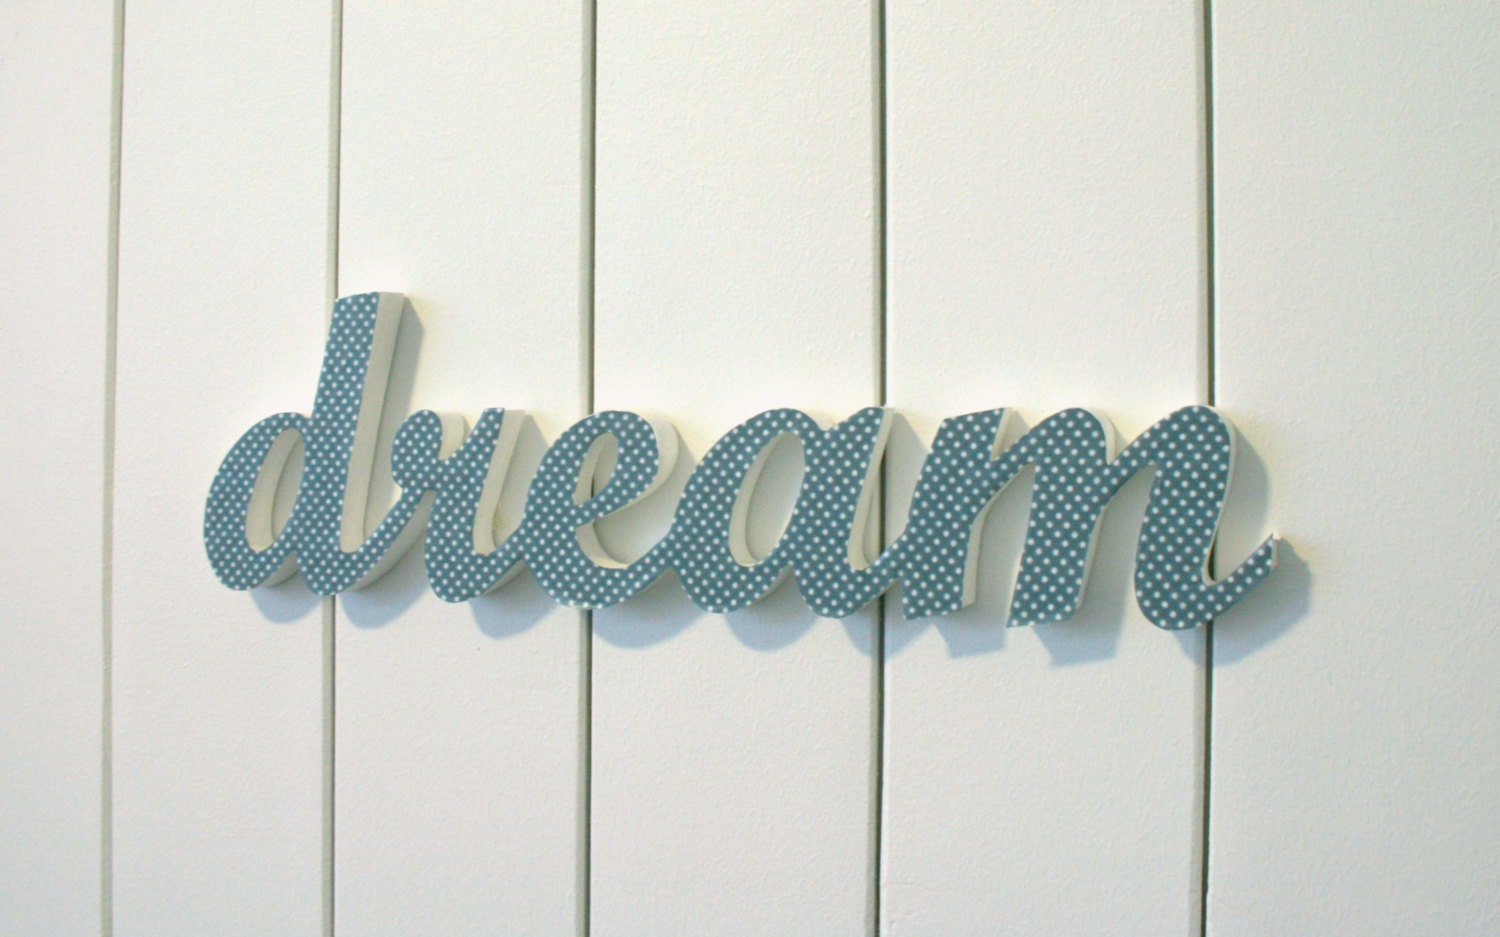 DREAM inspirational wood word wall art hanging or